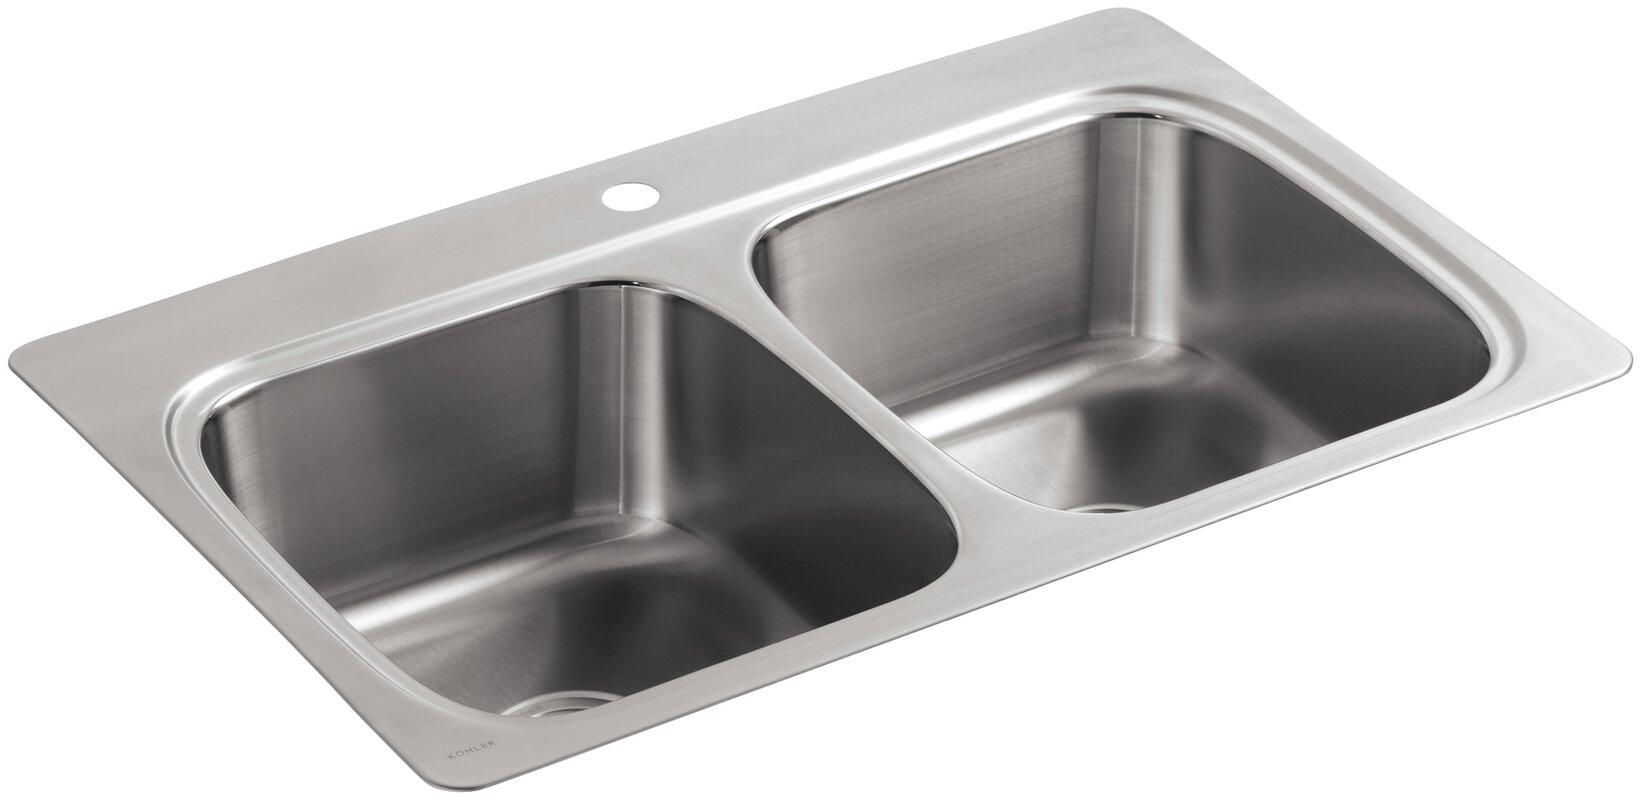 Kohler Verse Top-Mount Double-Equal Bowl Kitchen Sink with Single ...